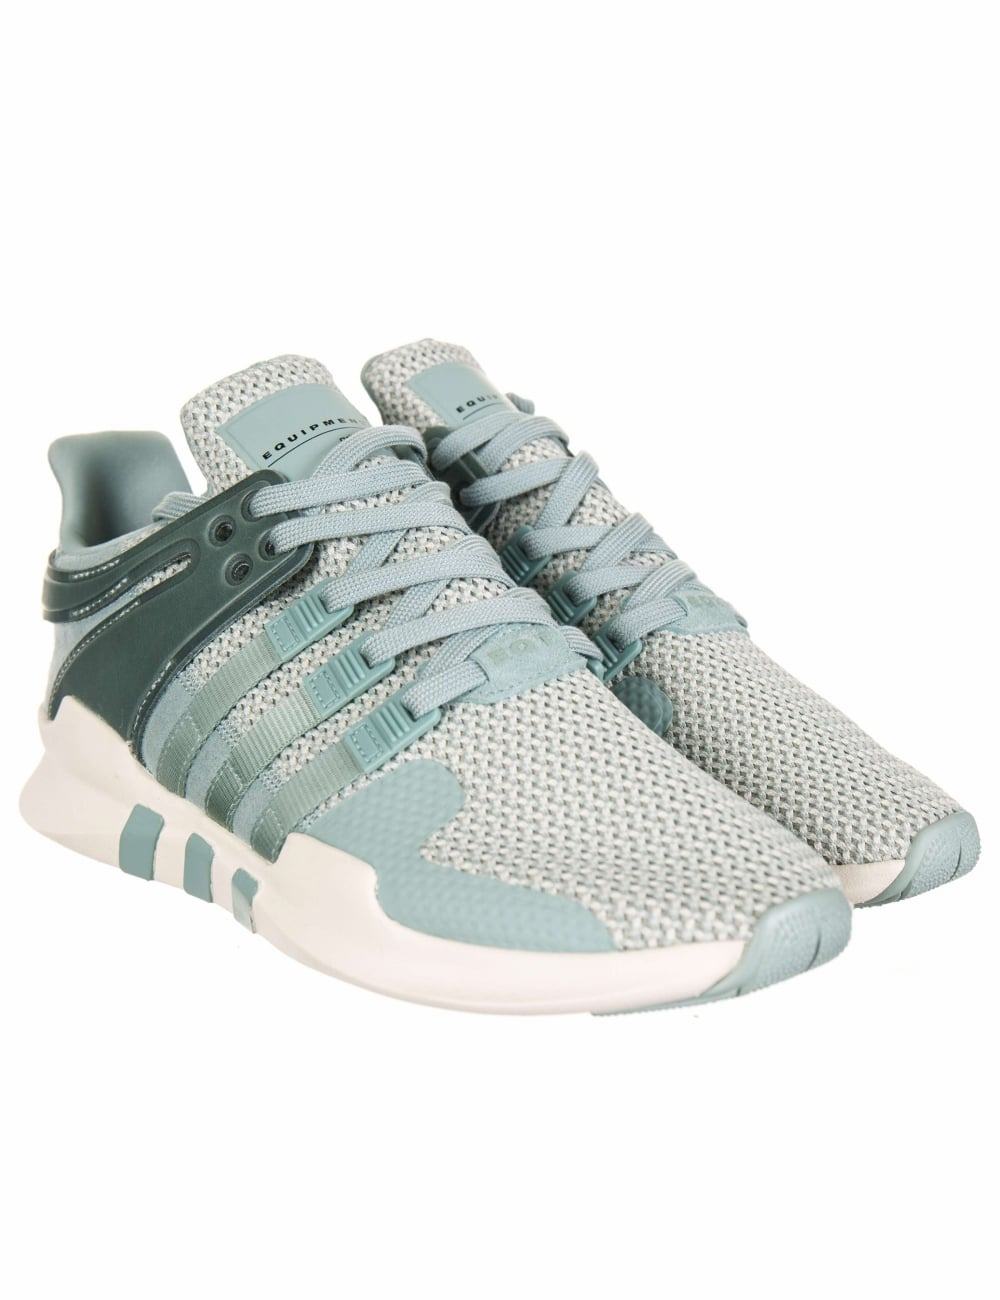 buy online dc683 b37d2 EQT Support Advance Trainers - Tactile Green/Off White (BA7580)